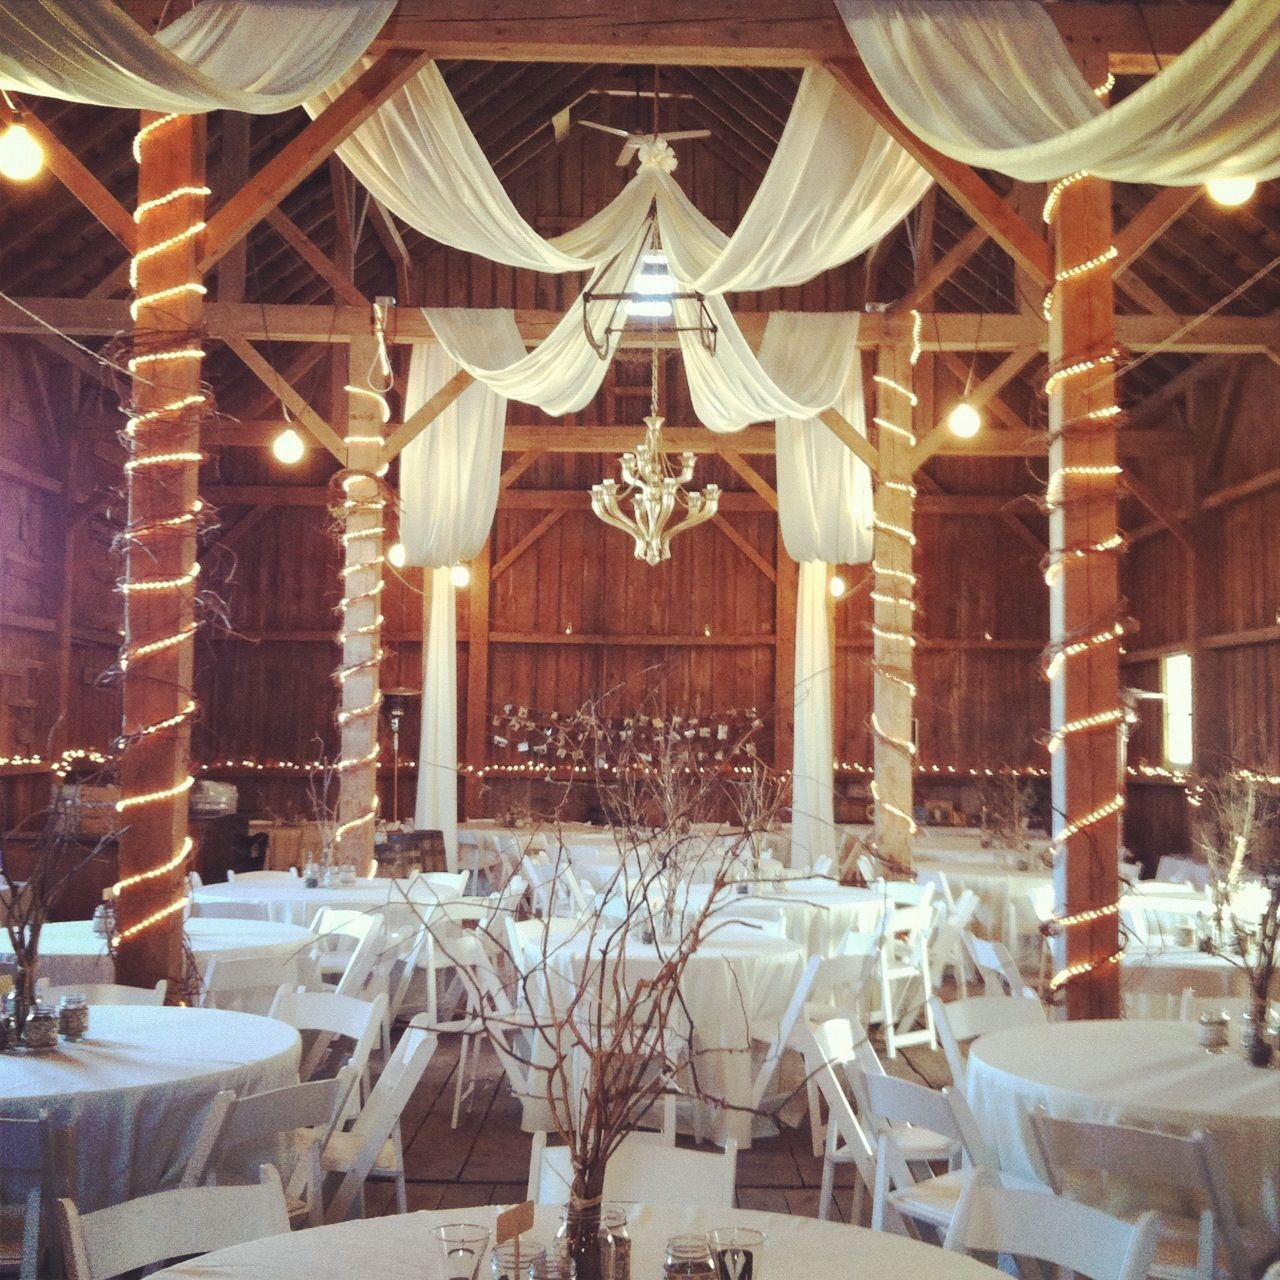 We Love Barn Weddings They Are Cozily Rustic Comfy And Rather Budget Friendly A Frequent Problem Here Is That It May Be Dark Inside